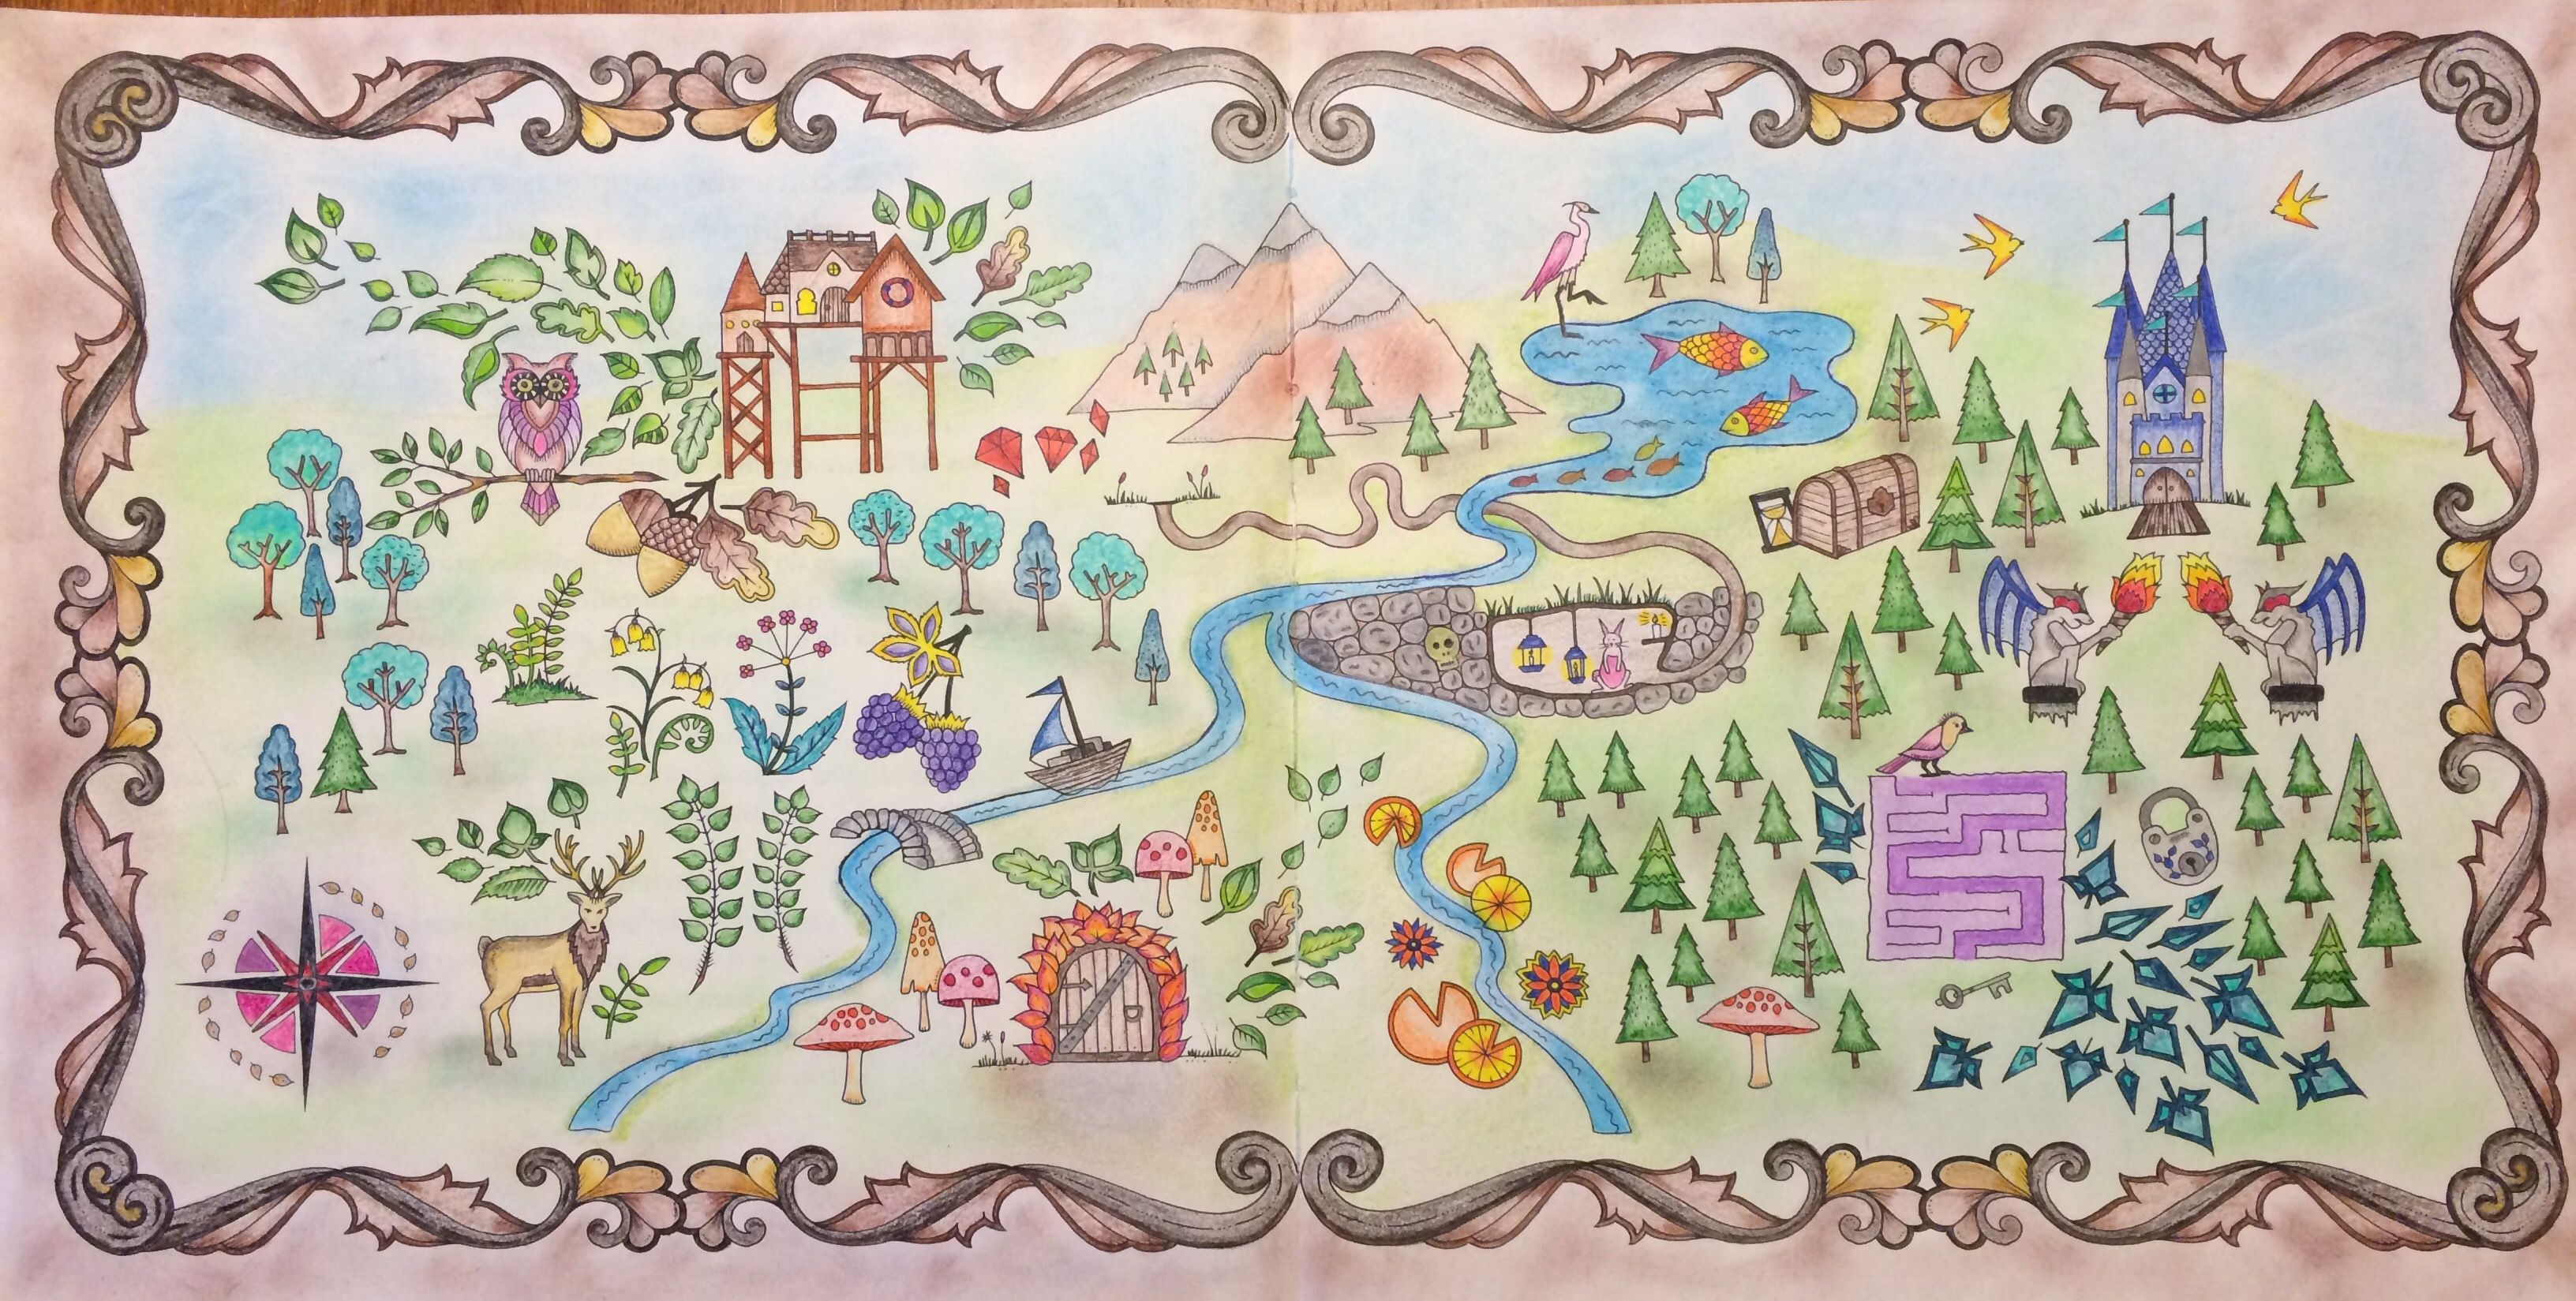 Enchanted Forest Map Coloring Book By Johanna Basford Colored Kelsey Everett